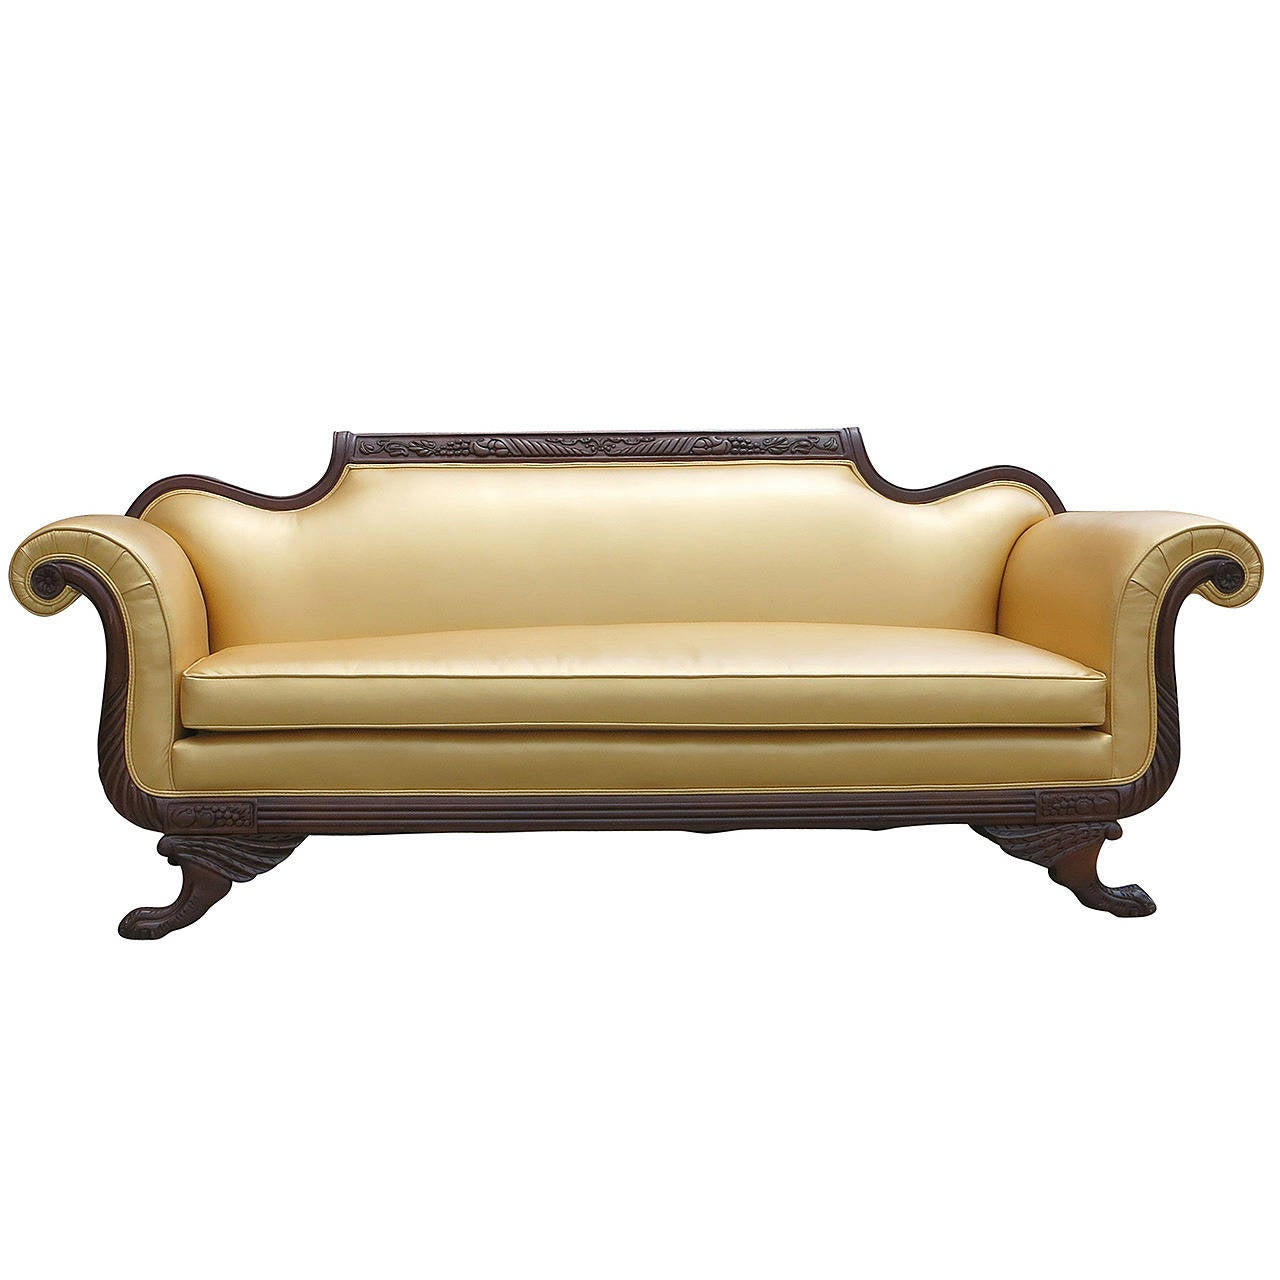 duncan phyfe style empire sofa at 1stdibs